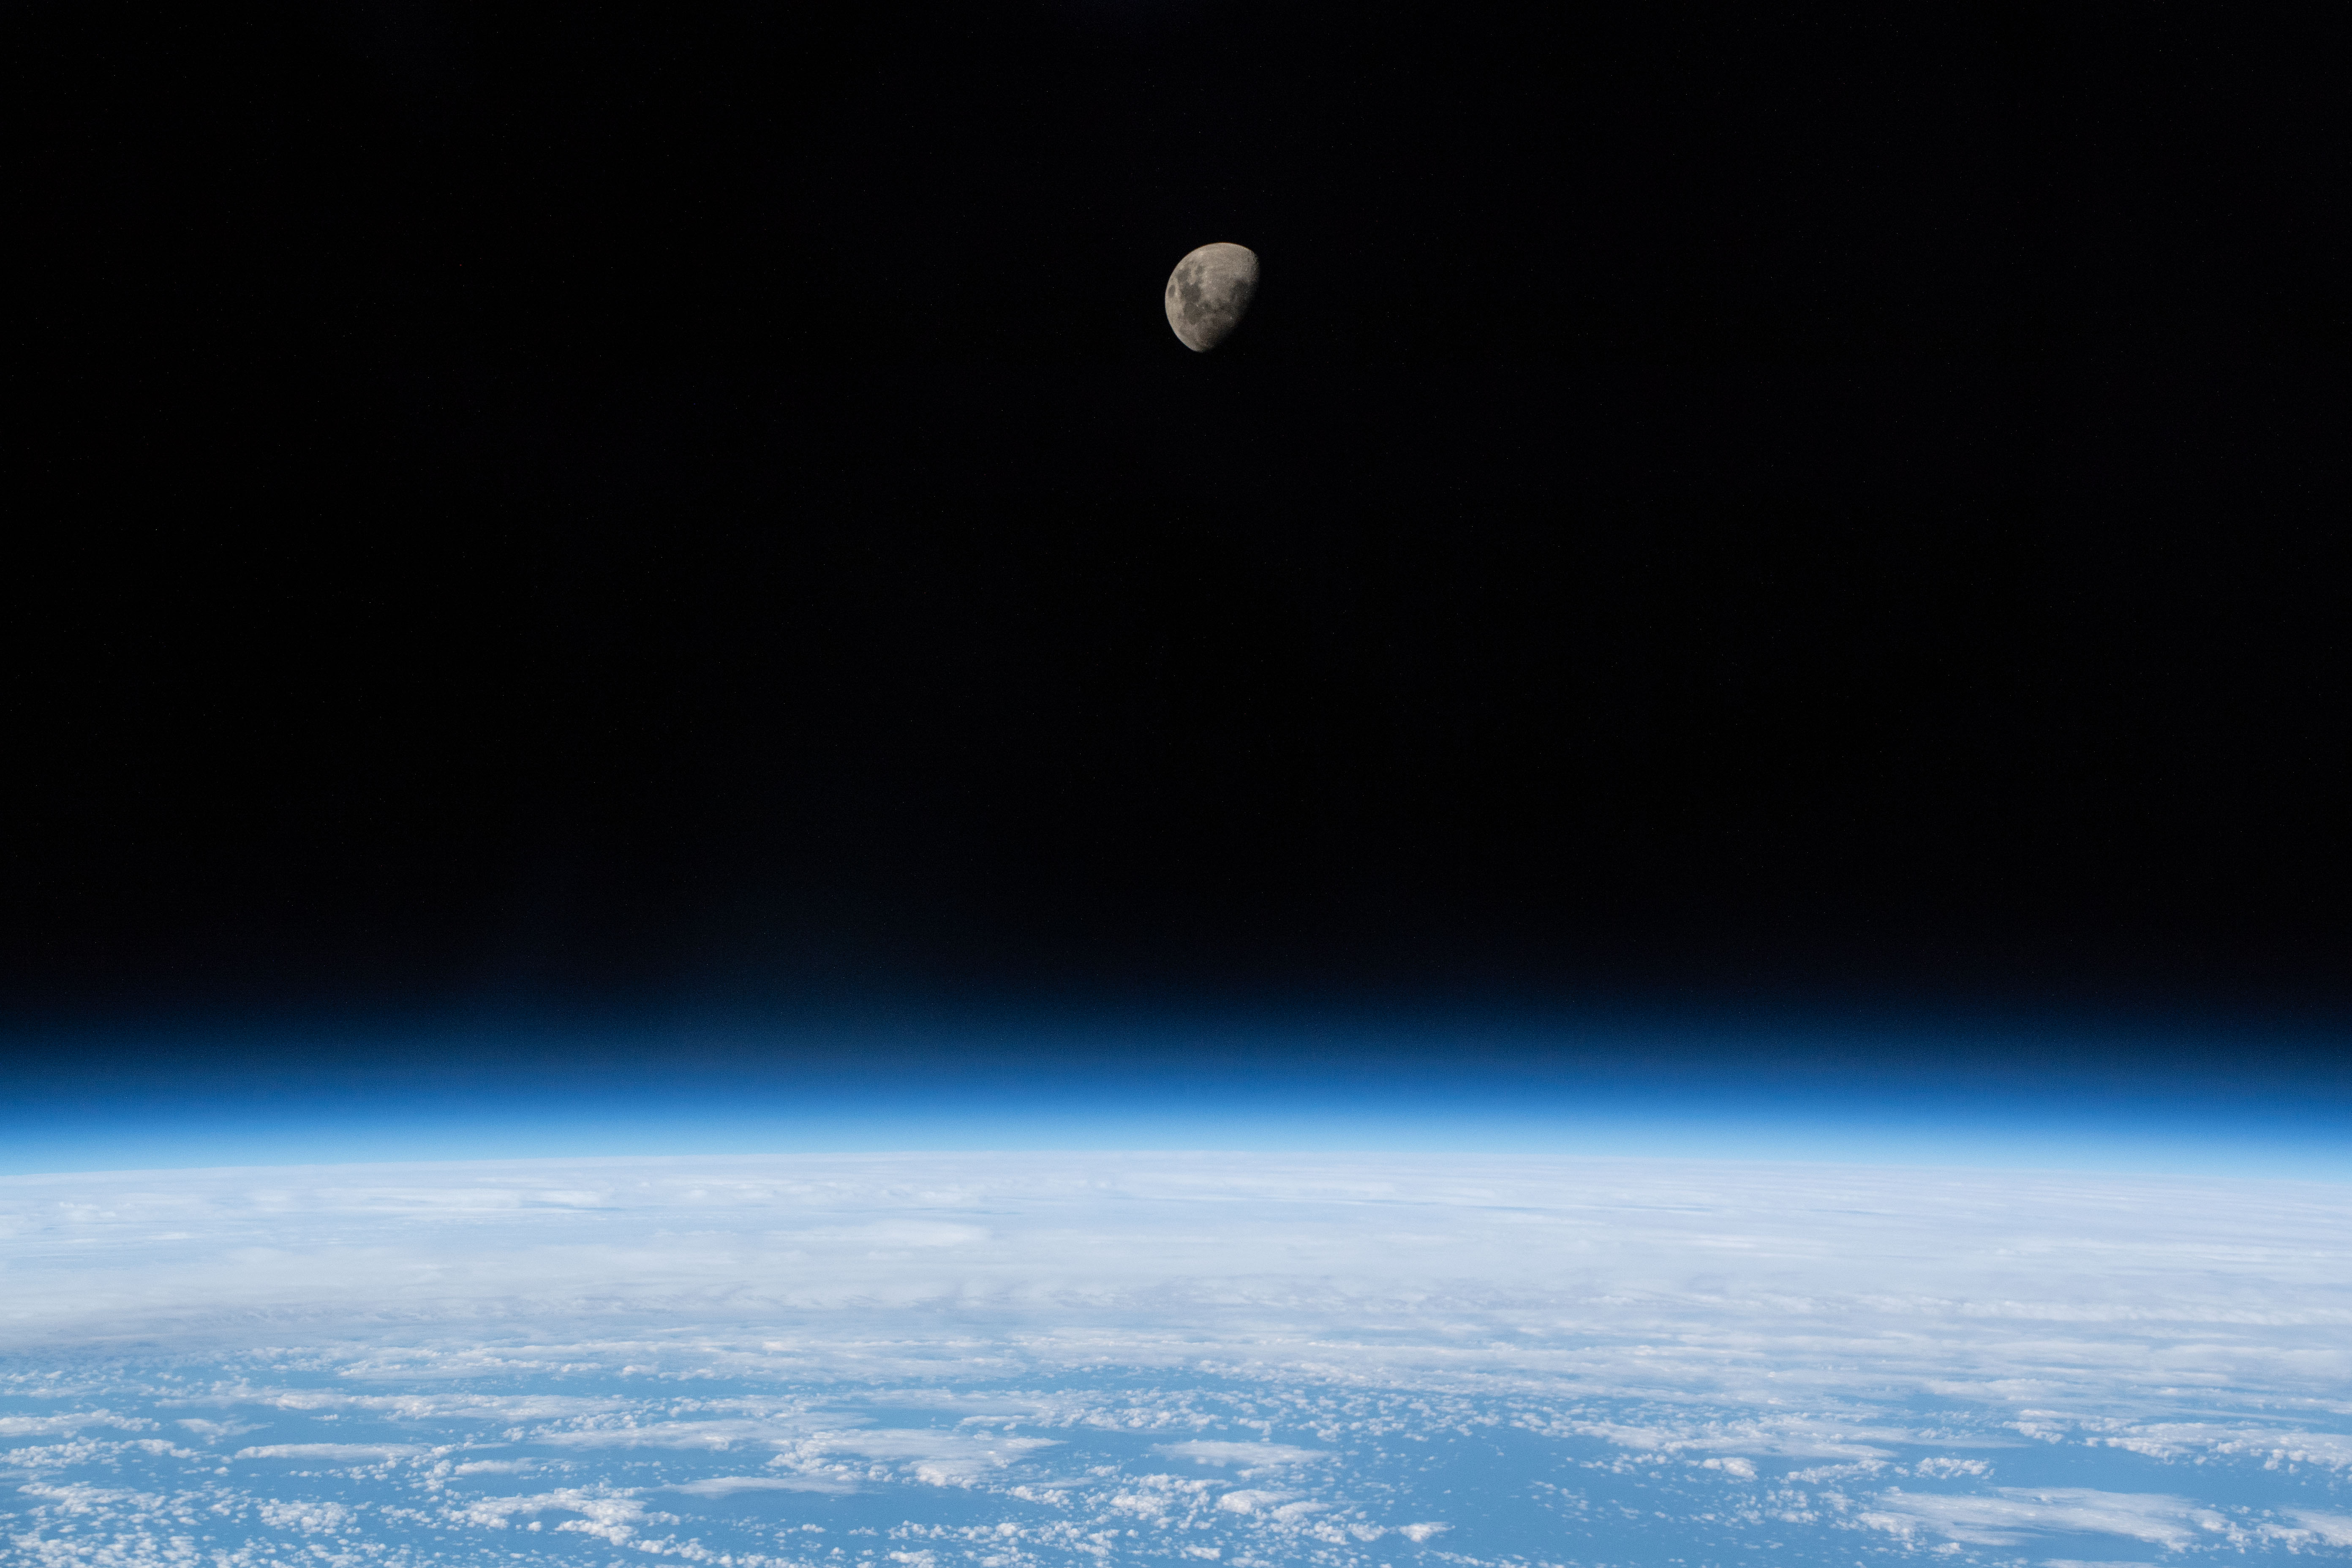 File:ISS-59 Waxing Gibbous Moon above the South Atlantic Ocean (2).jpg - Wikimedia Commons